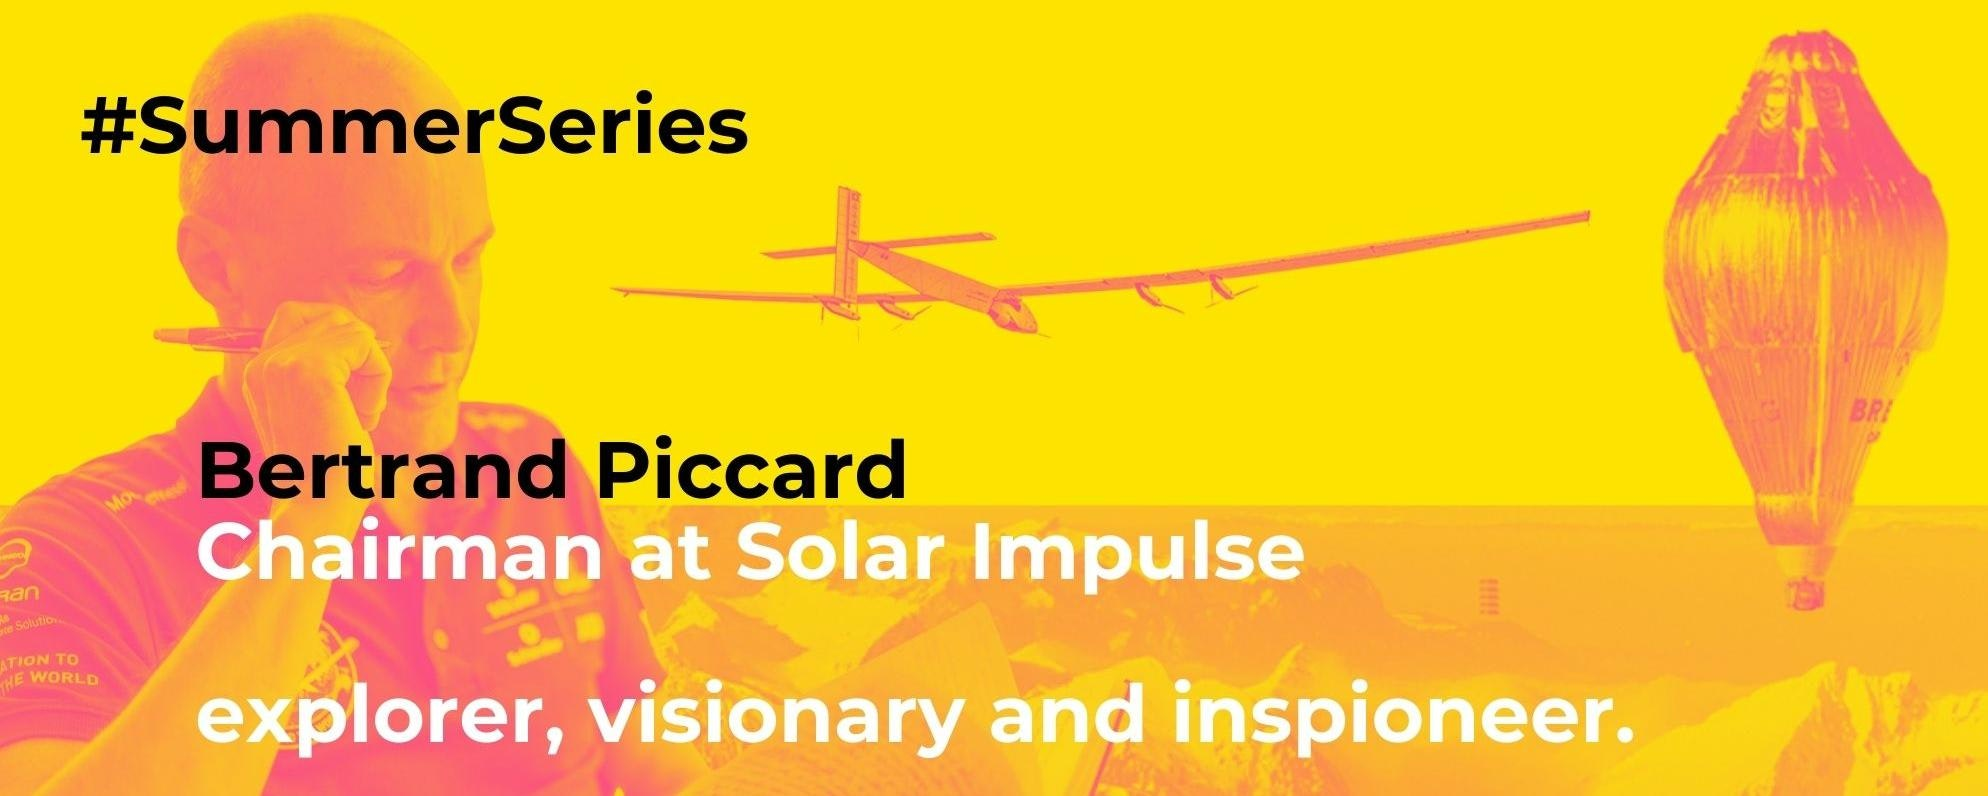 #SummerSeries: 5 questions for Bertrand Piccard—explorer, visionary, inspioneer